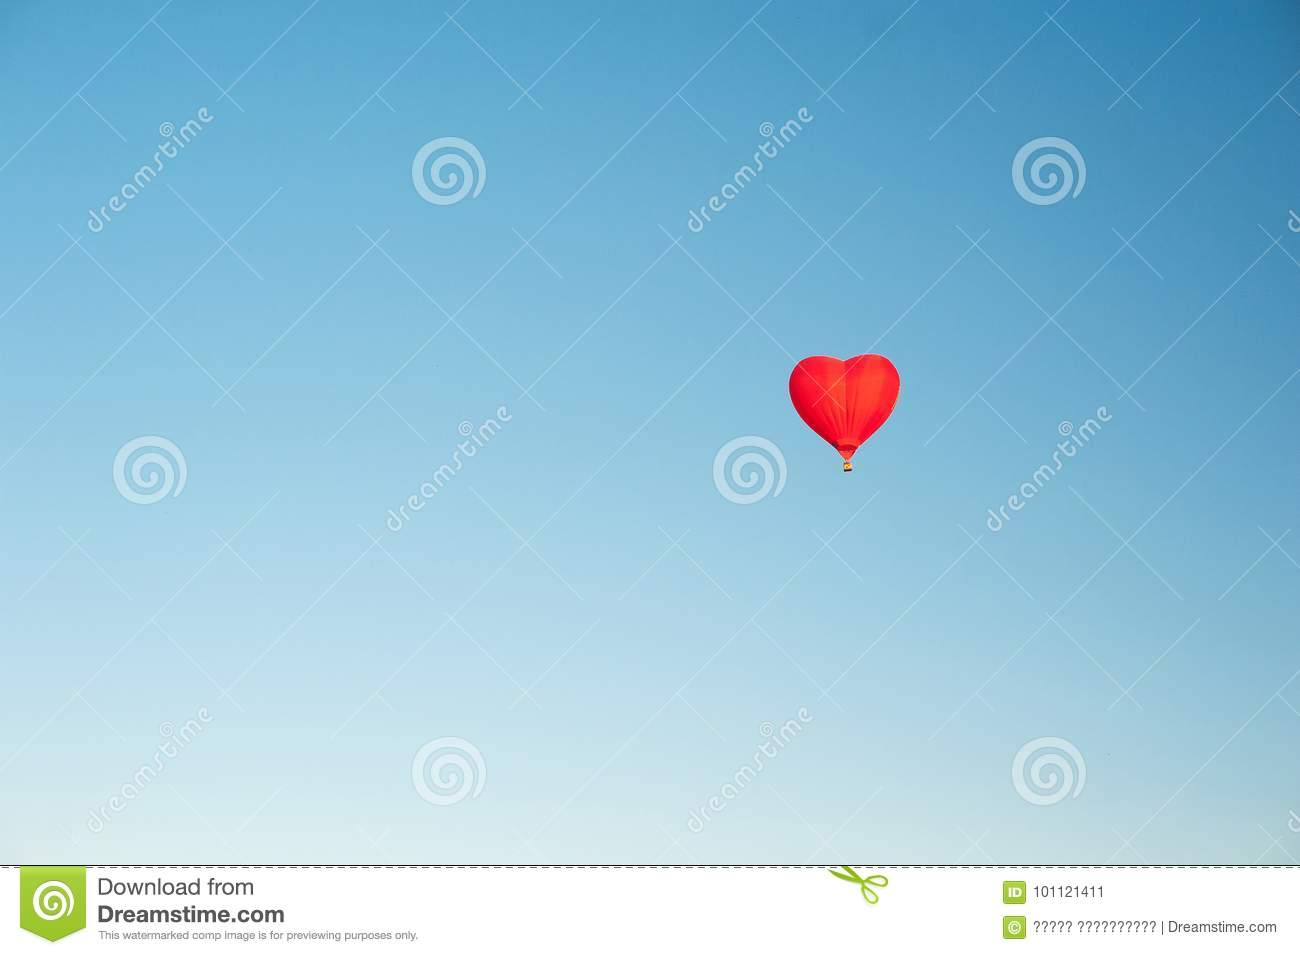 Red Hot Air Balloon In The Shape Of A Heart In Clear Blue Sky